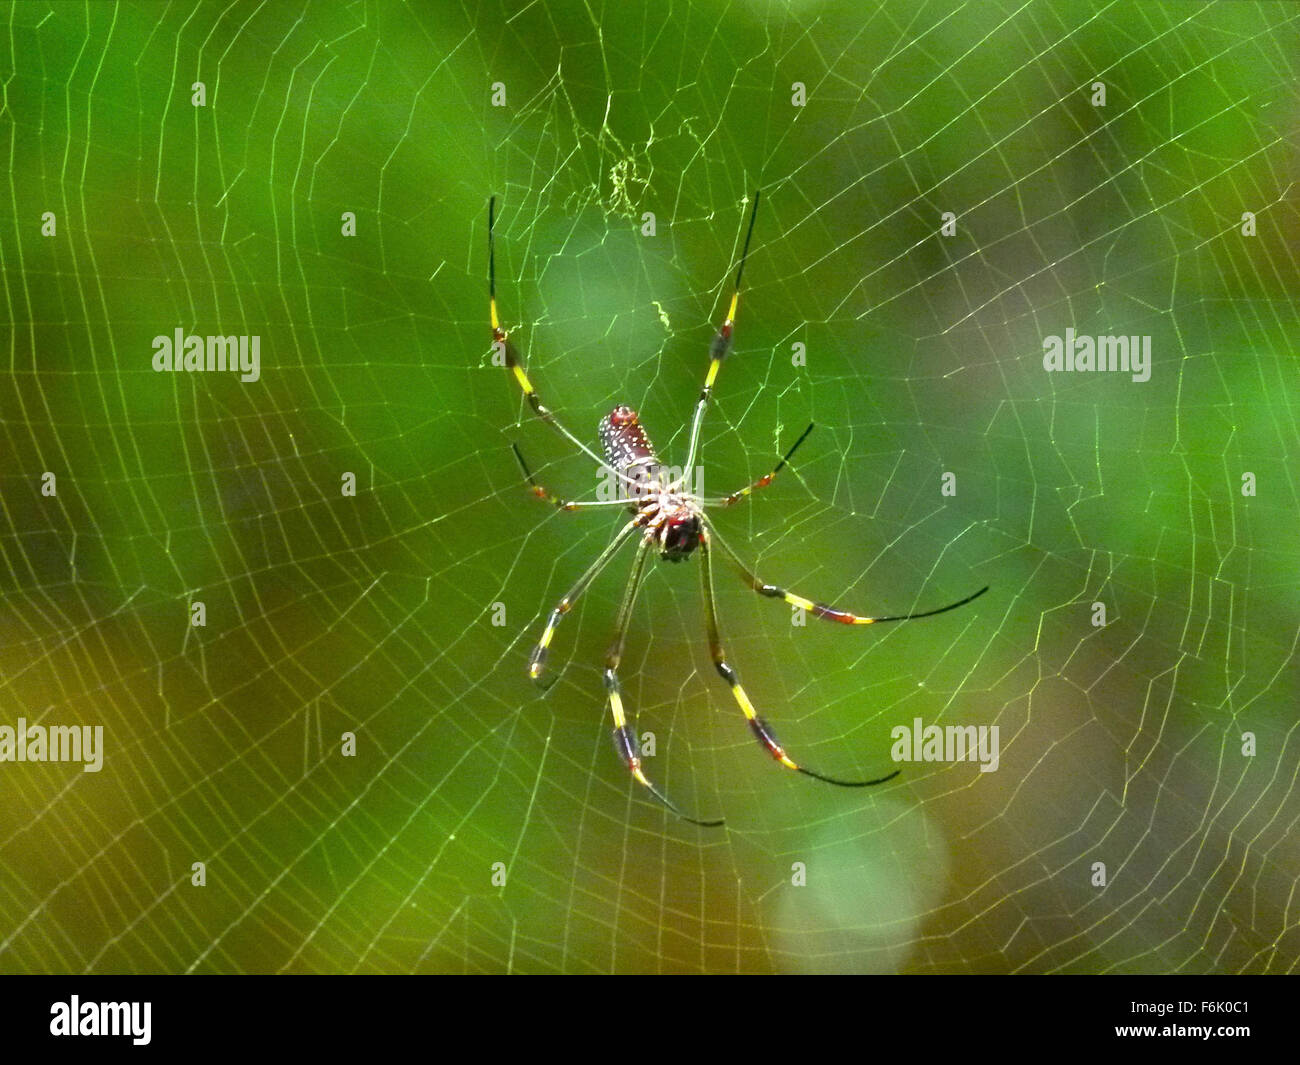 Nature, Spider, Spiders, Webs, Jungle, Animals, Insects - Stock Image